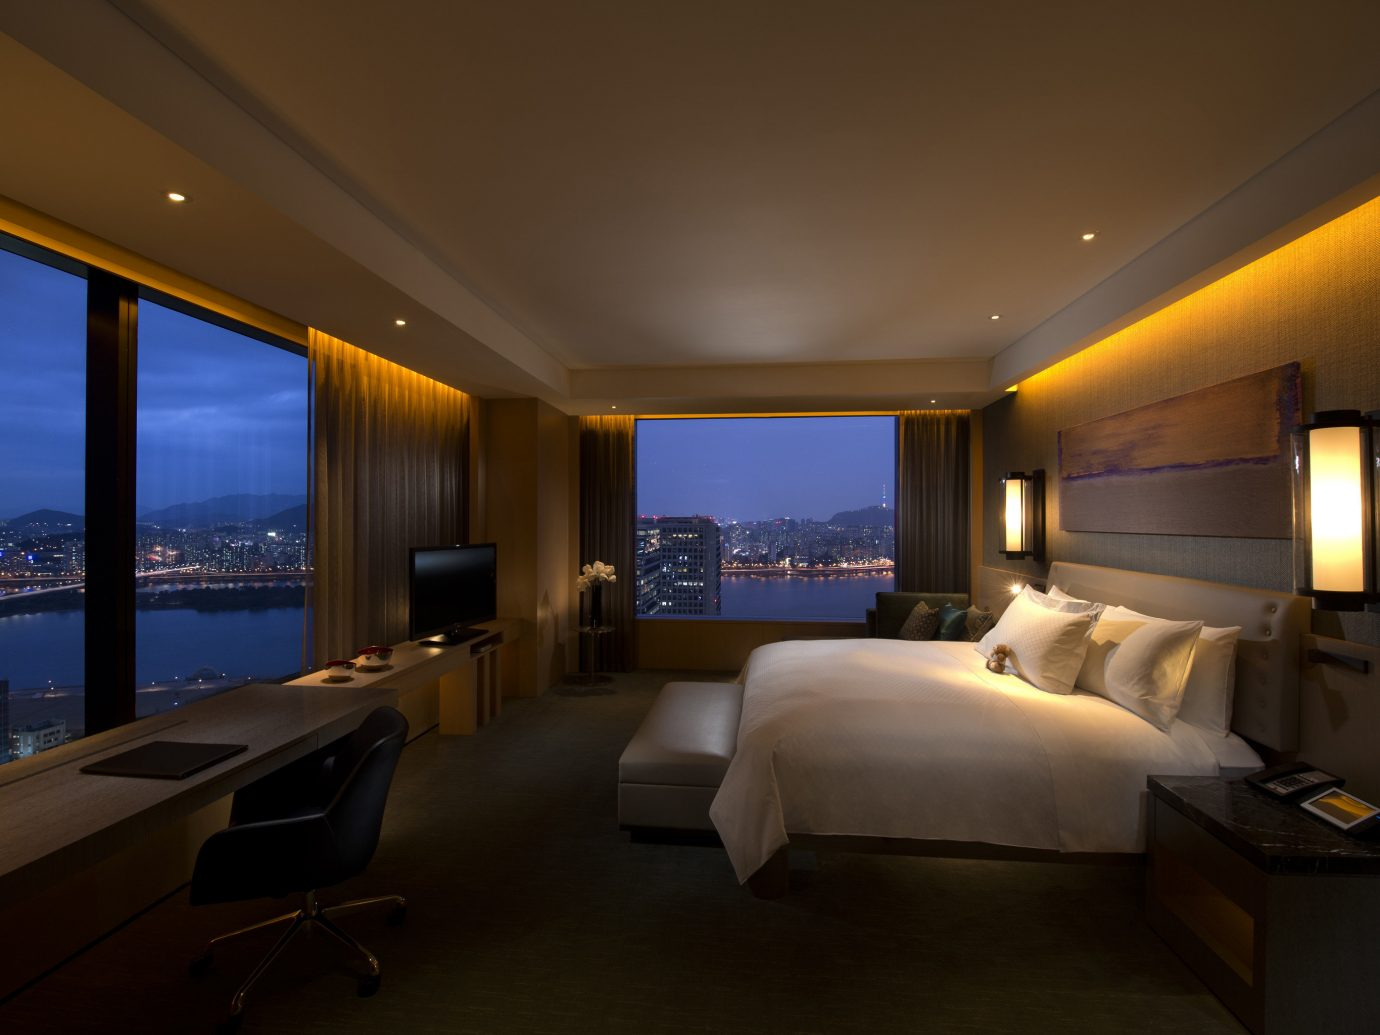 Hotels Luxury Travel ceiling indoor floor wall room bed hotel interior design Architecture lighting Suite Bedroom real estate window penthouse apartment estate interior designer daylighting apartment furniture several